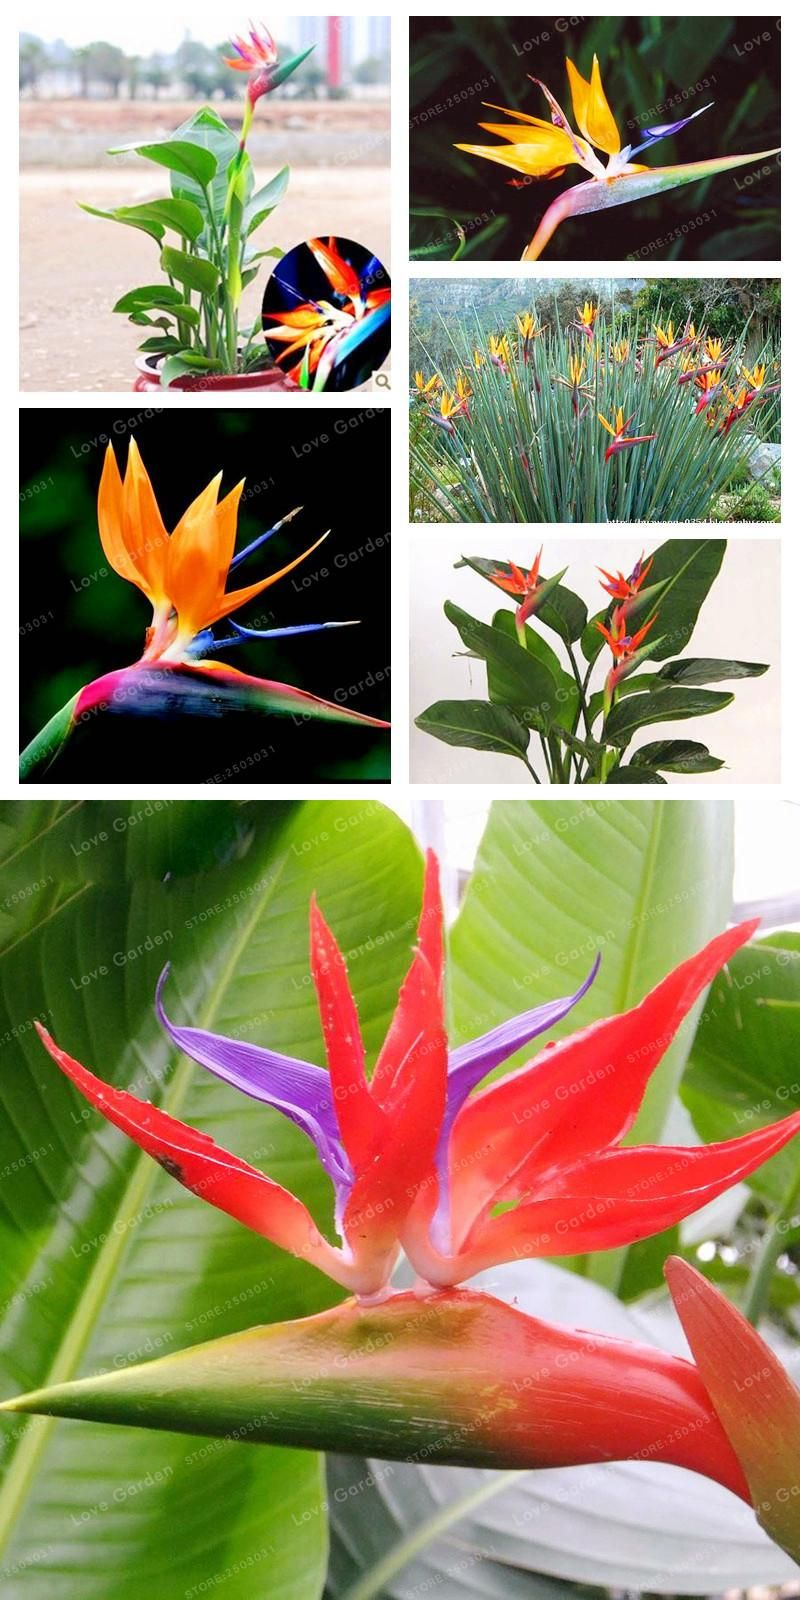 Visit To Buy Hot Sell Strelitzia Reginae Seeds Indoor Potted Plant Flowers Bird Of Paradise Seed Easy T Easy To Grow Flowers Growing Flowers Planting Flowers